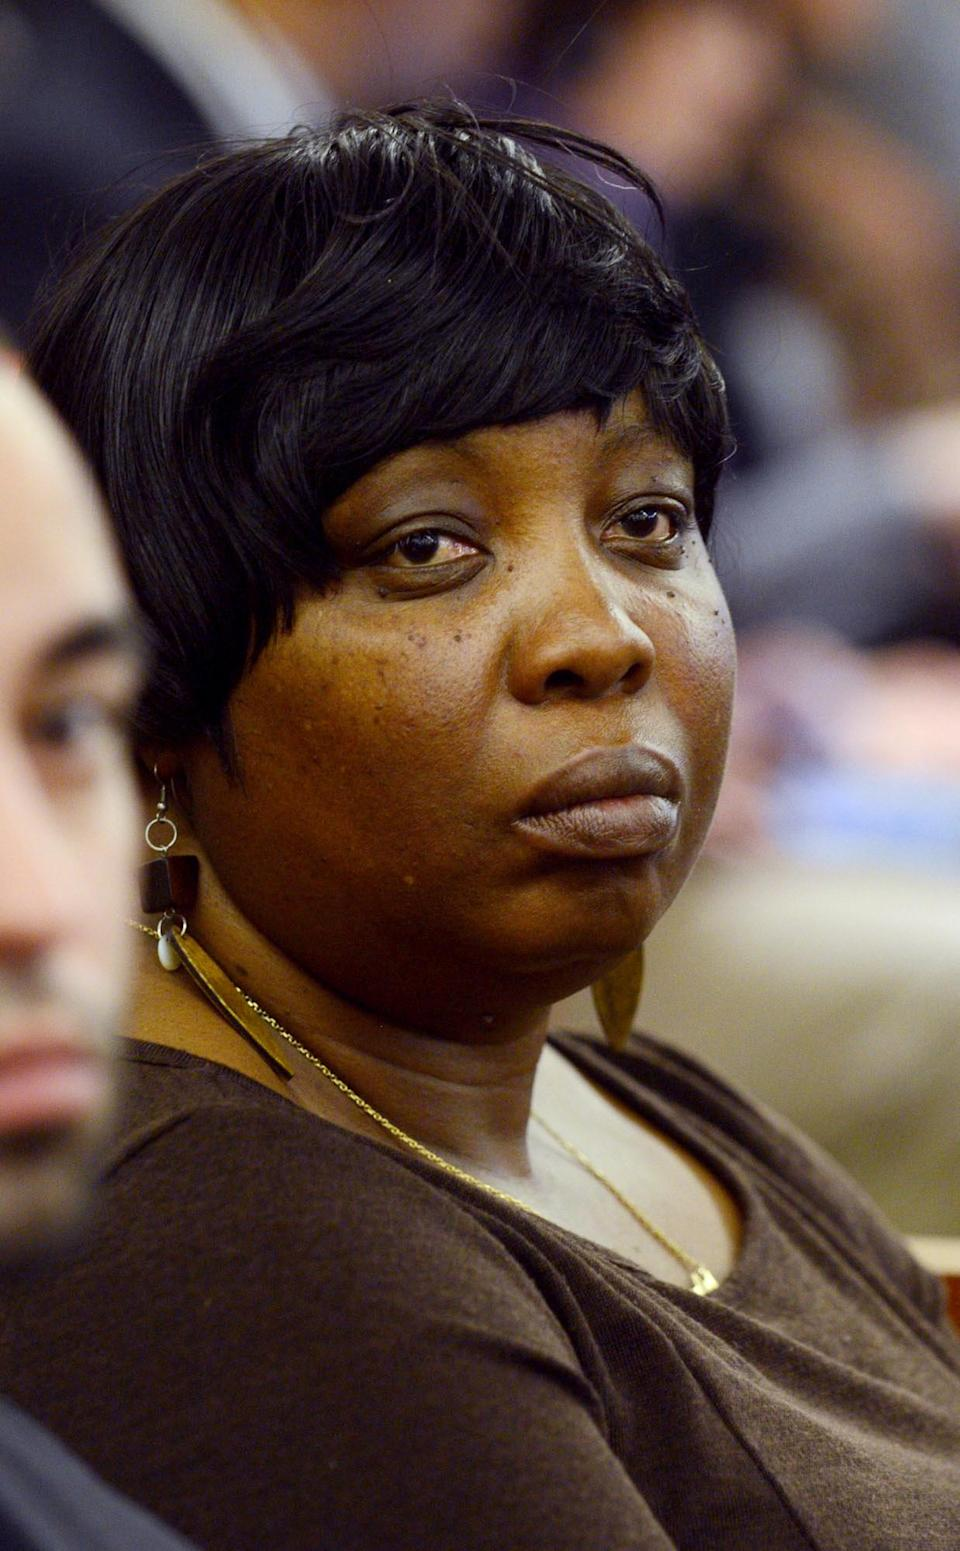 Ursula Ward, Odin Lloyds mother sits during football player Aaron Hernandez's murder trial at Bristol County Superior Court in Fall River, Massachusetts February 11, 2015. REUTERS/Ted Fitzgerald/Pool (UNITED STATES - Tags: CRIME LAW SPORT FOOTBALL)